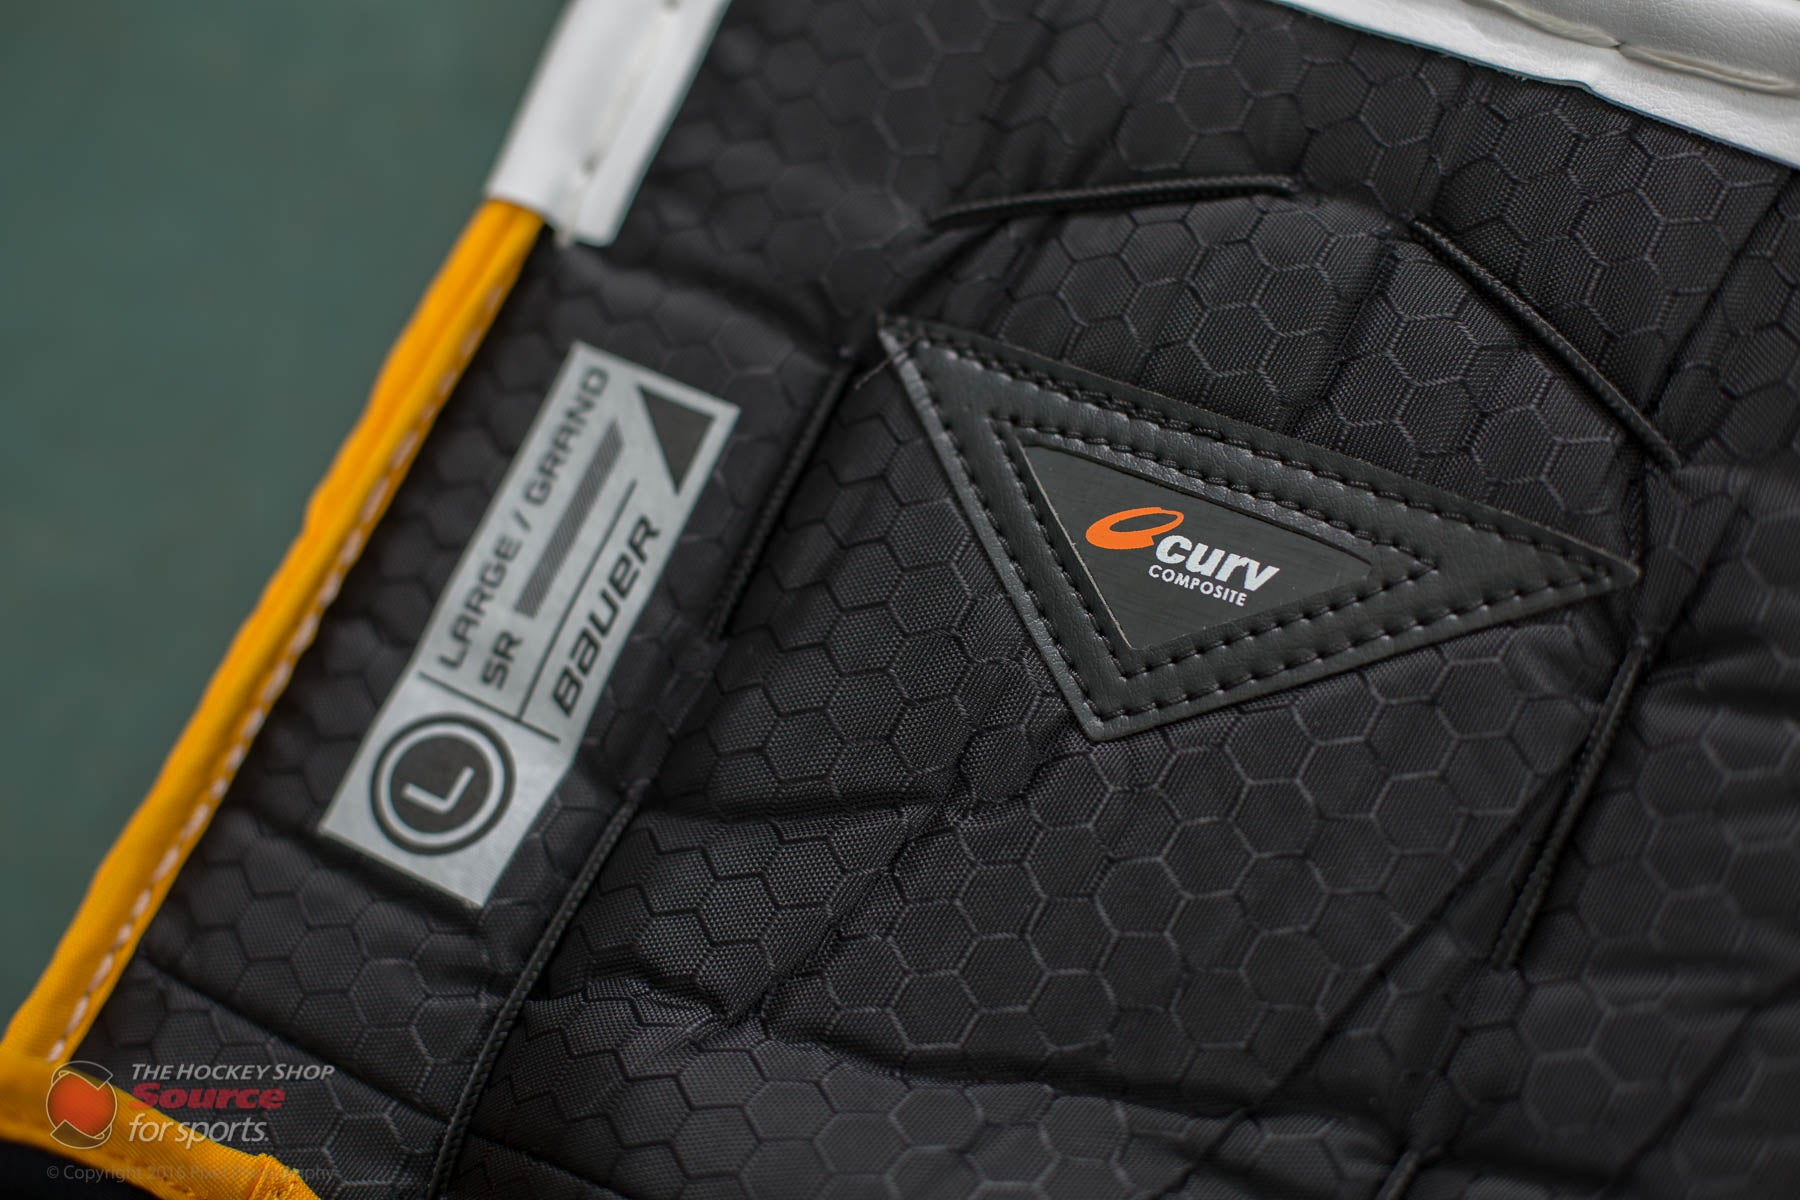 Bauer 1S OD1N Leg Pads – The Hockey Shop Source For Sports